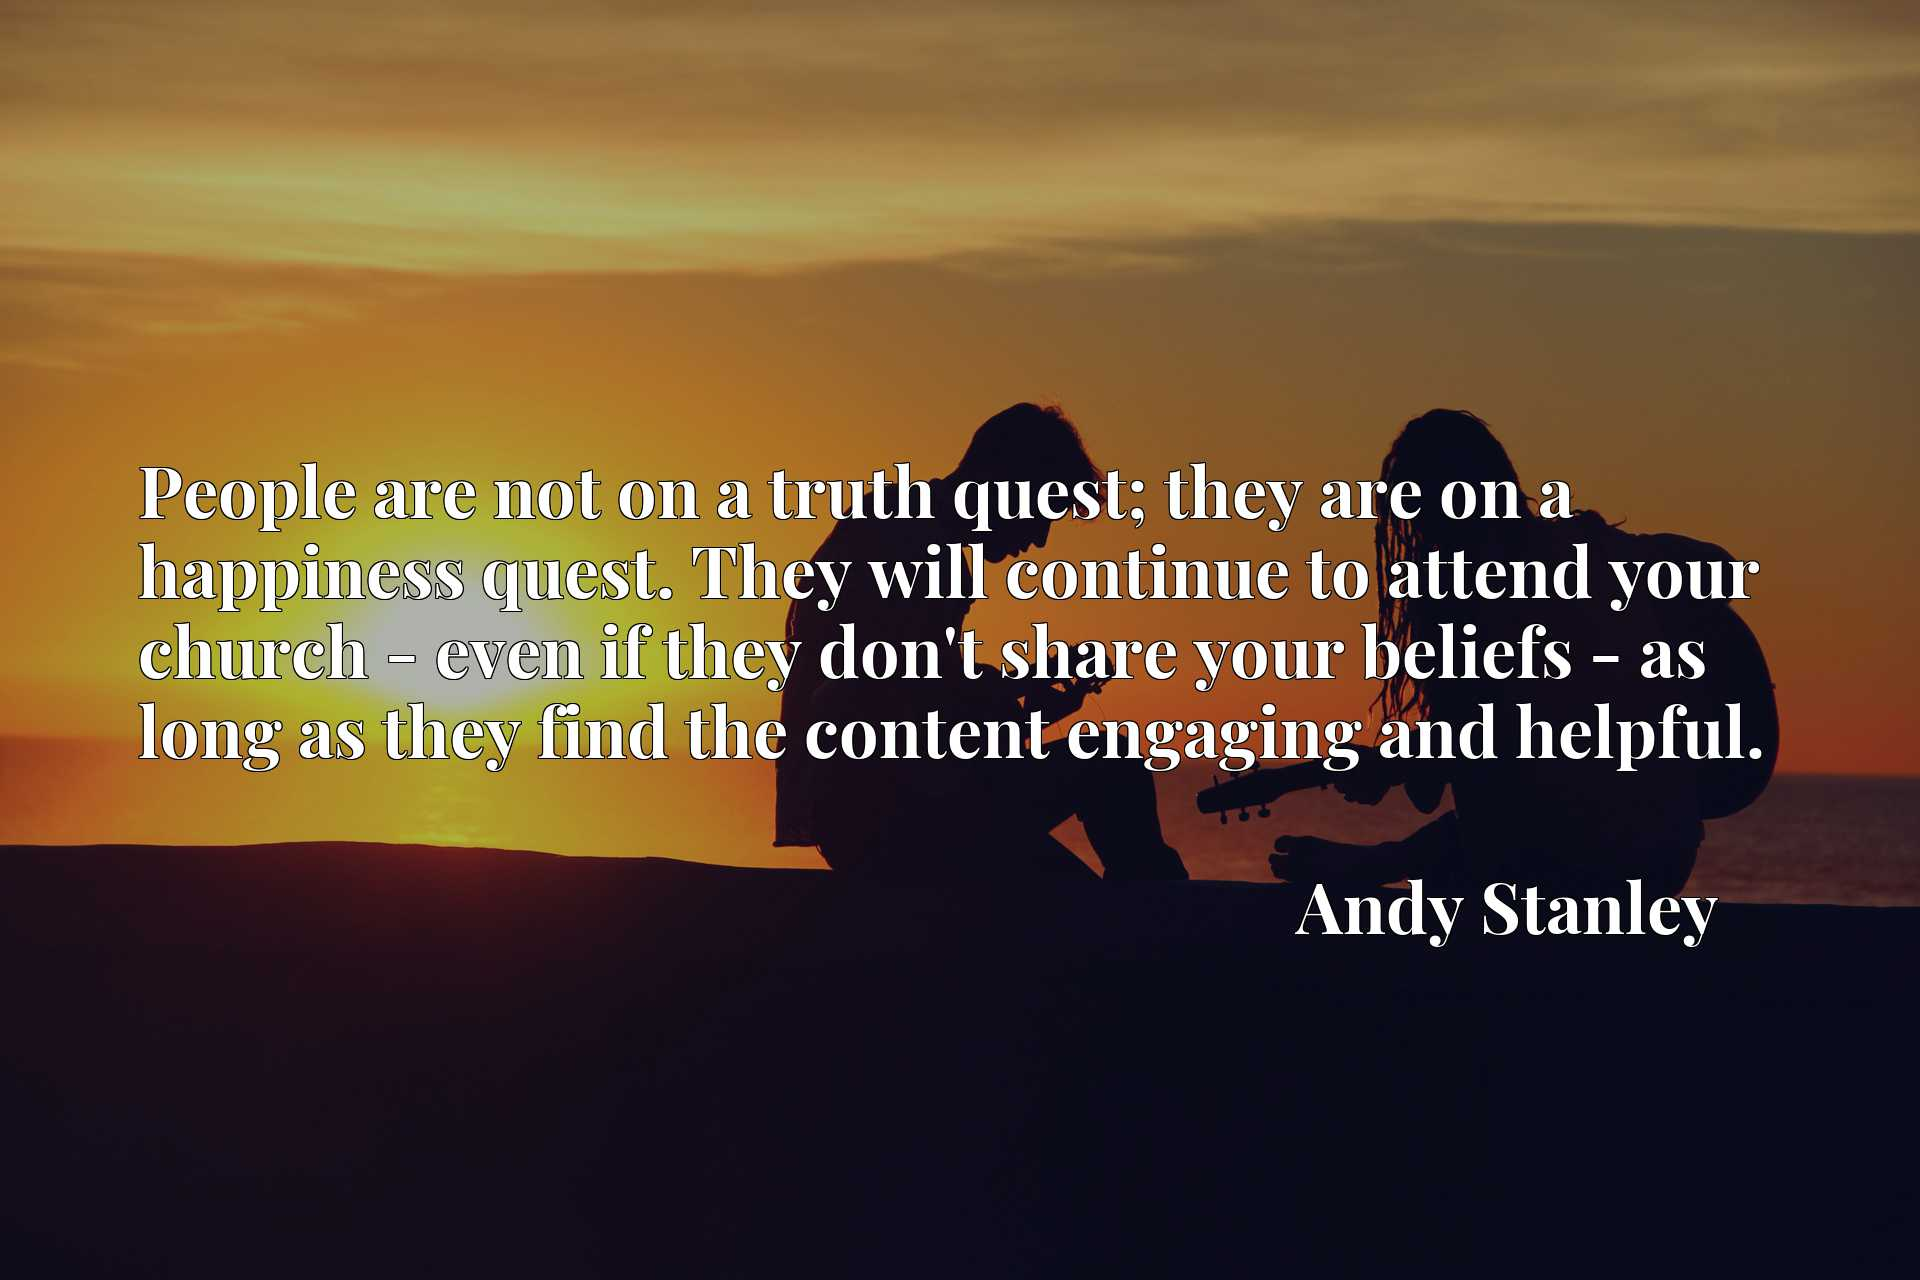 People are not on a truth quest; they are on a happiness quest. They will continue to attend your church - even if they don't share your beliefs - as long as they find the content engaging and helpful.